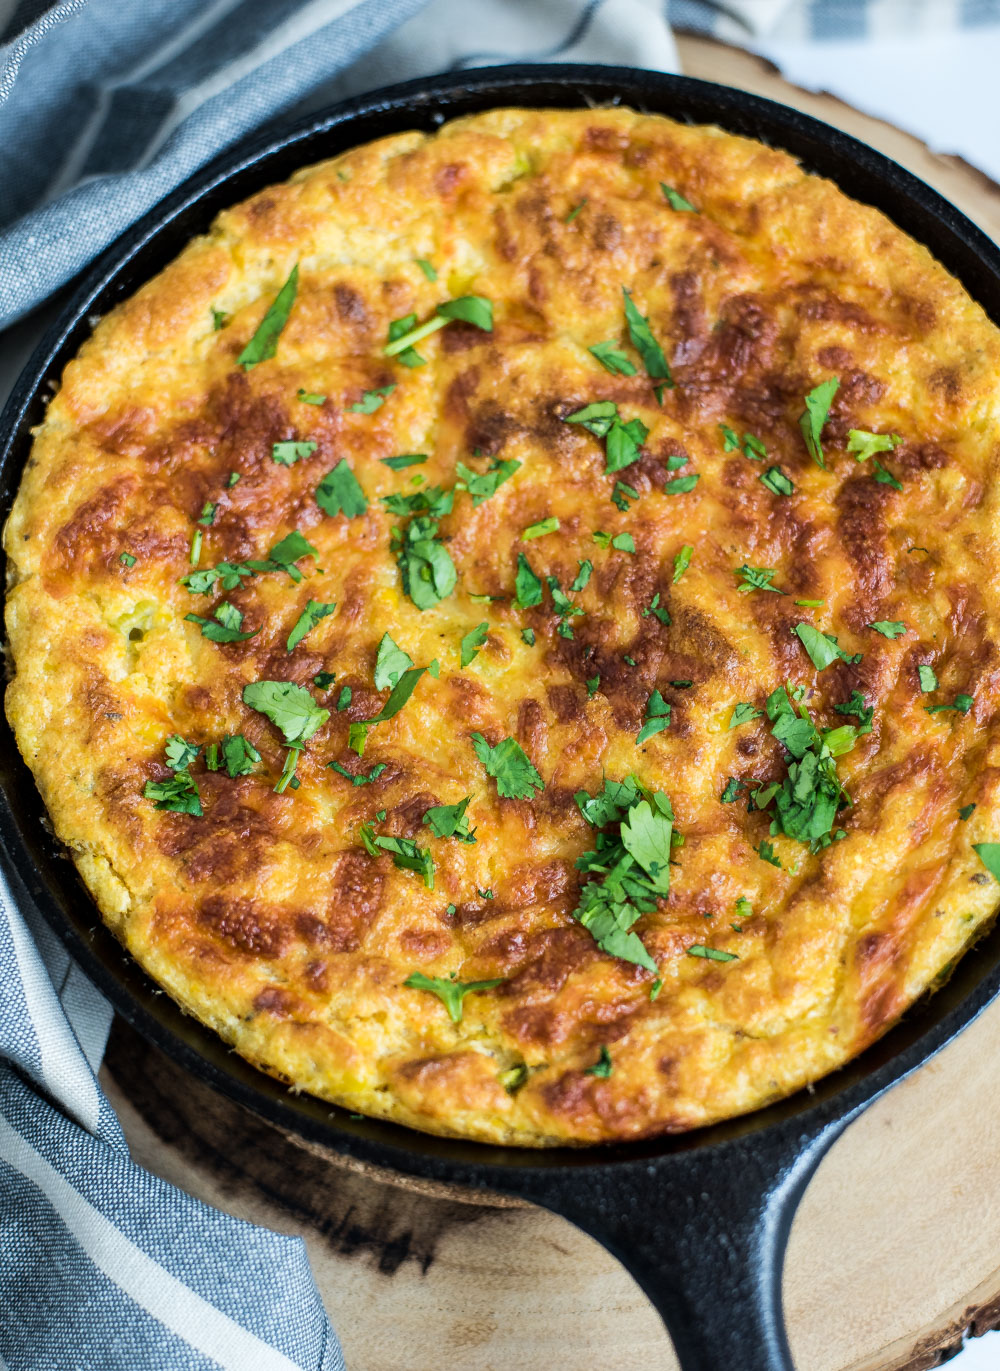 Jazz up your traditional spoon bread recipe by making it southwest-style! This southwestern spoon bread is the perfect side dish for a summer BBQ!